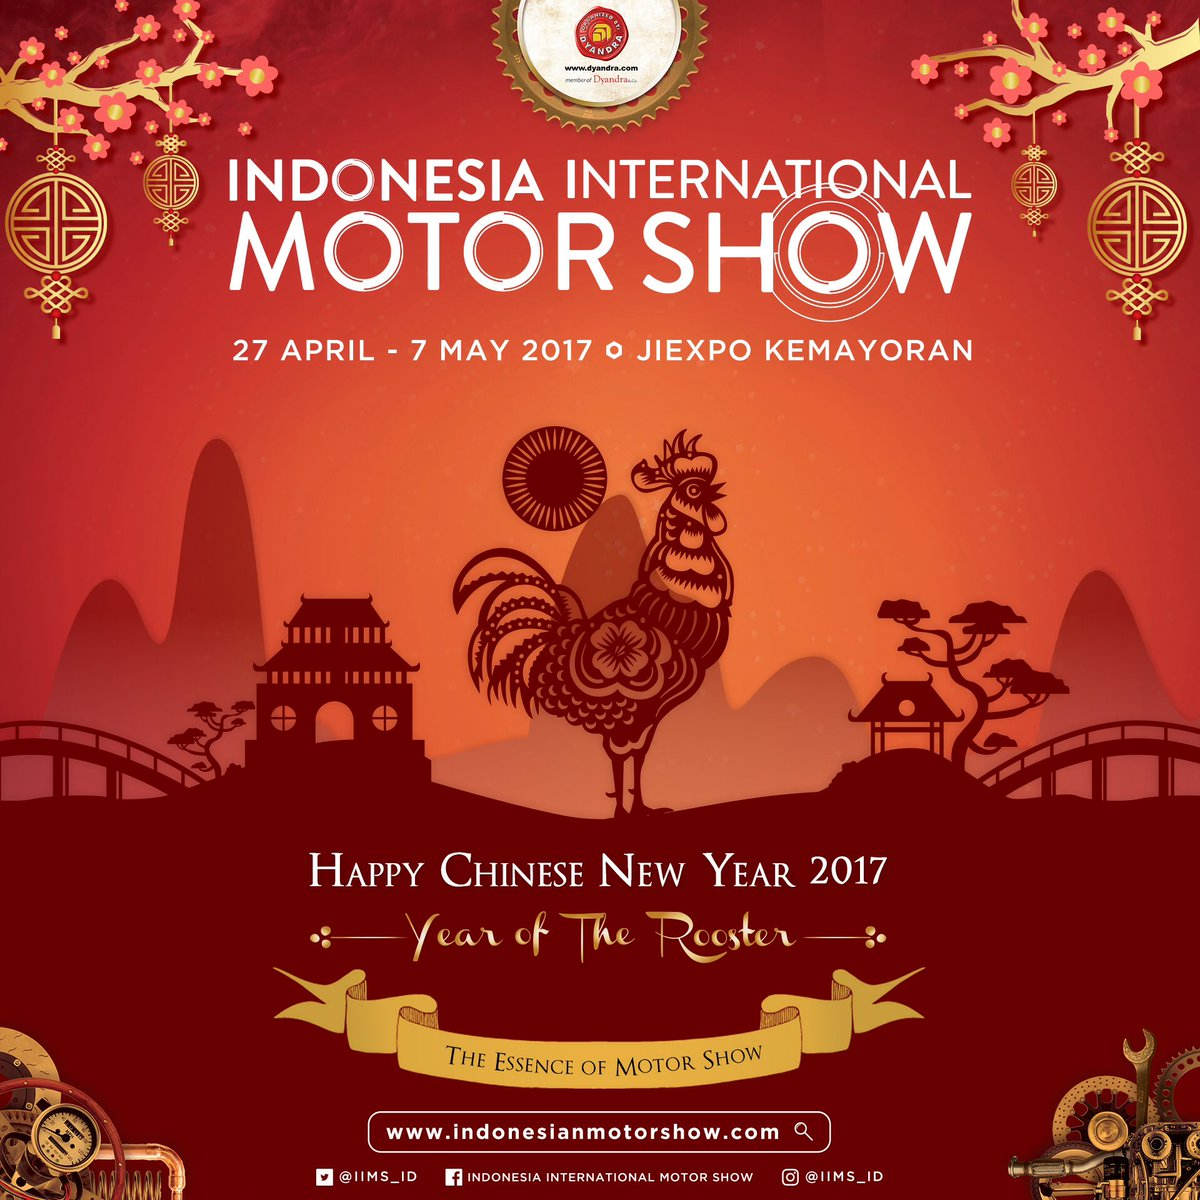 Indonesia International Motor Show - JIExpo Kemayoran, 27 April - 7 Mei 2017